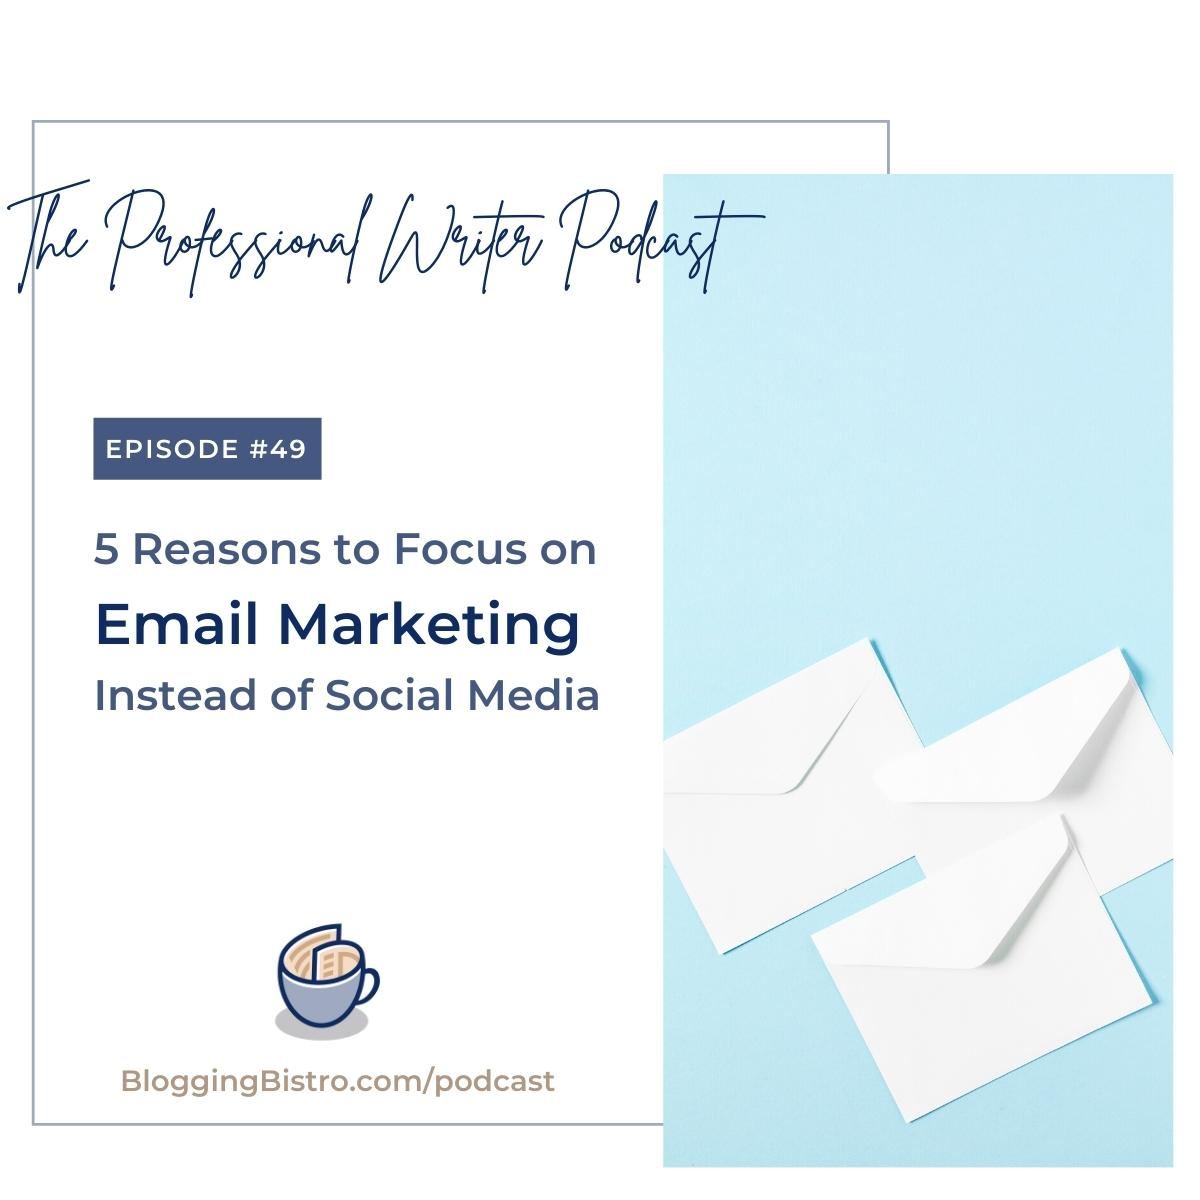 Episode 49 of The Professional Writer Podcast with Laura Christianson - 5 Reasons You Should Focus on Email Marketing Instead of Social Media